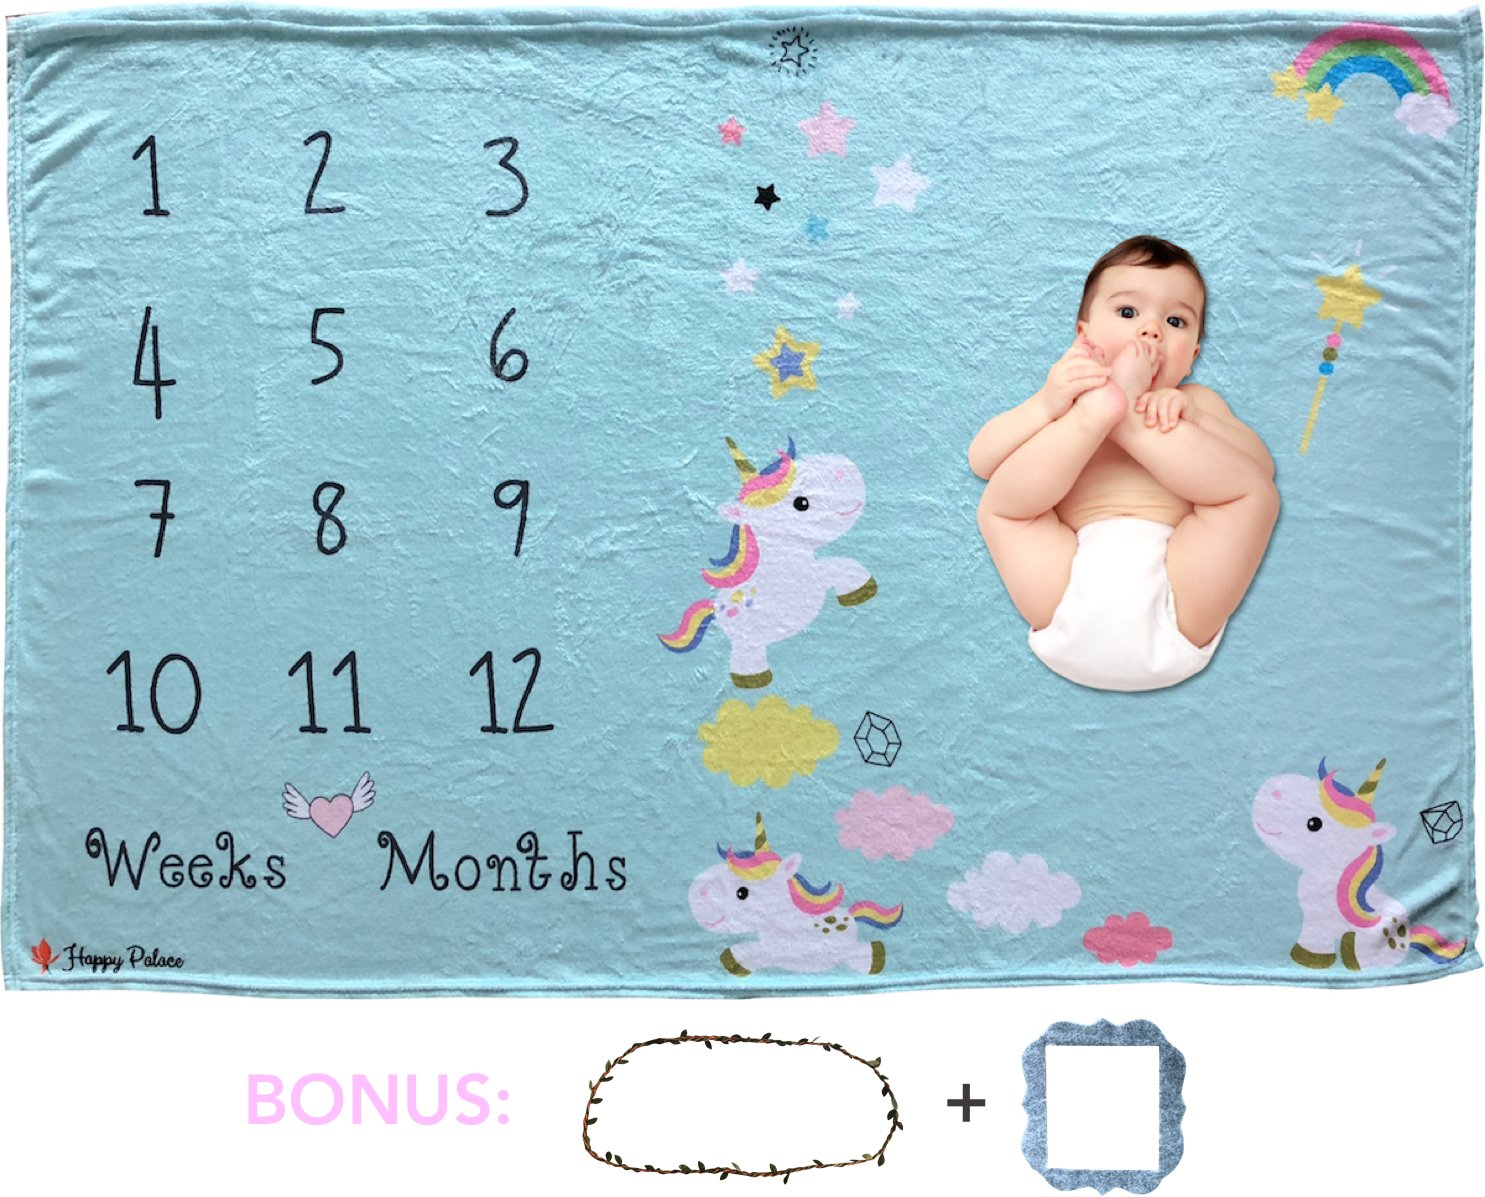 Happy Palace Adorable Weekly Monthly Baby Milestone Blanket (Floral Wreath and Frame Included) | Cute Photo Backdrop and Prop for Newborn Boy and Girl, for New Mom | Premium Fleece Large 60''x40''